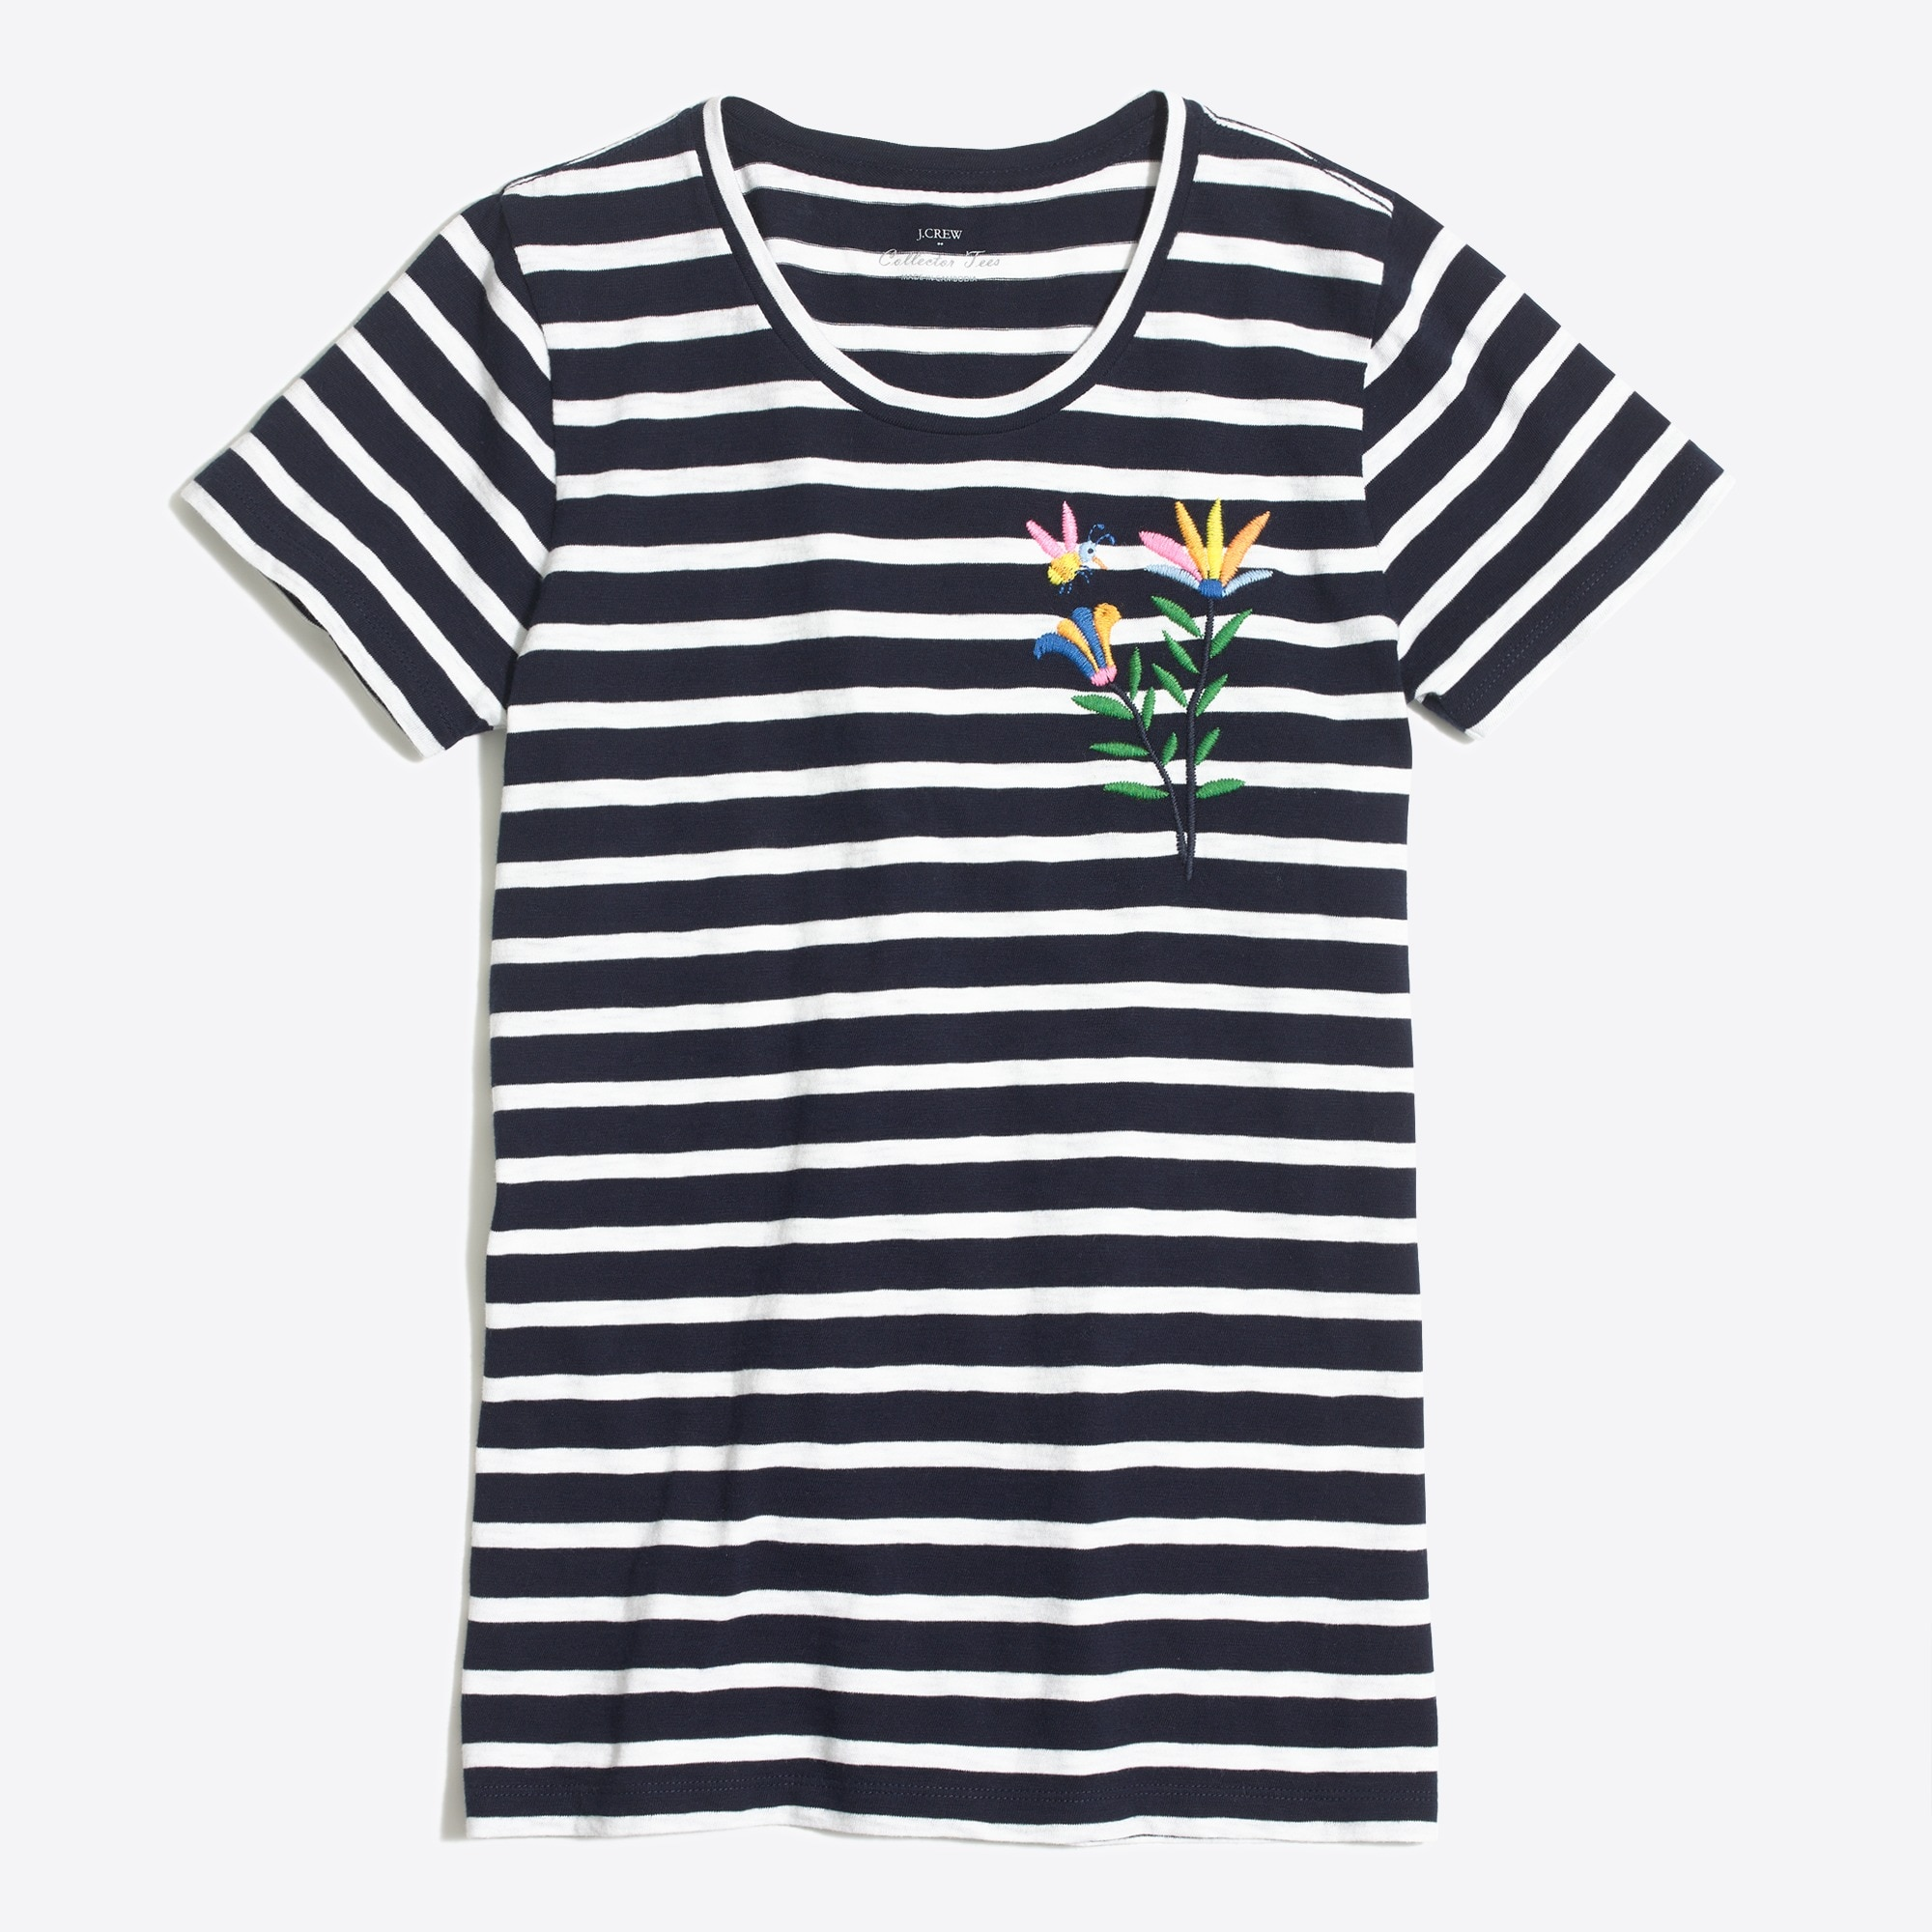 embroidered bumble collector t-shirt : factorywomen graphic & collector t-shirts